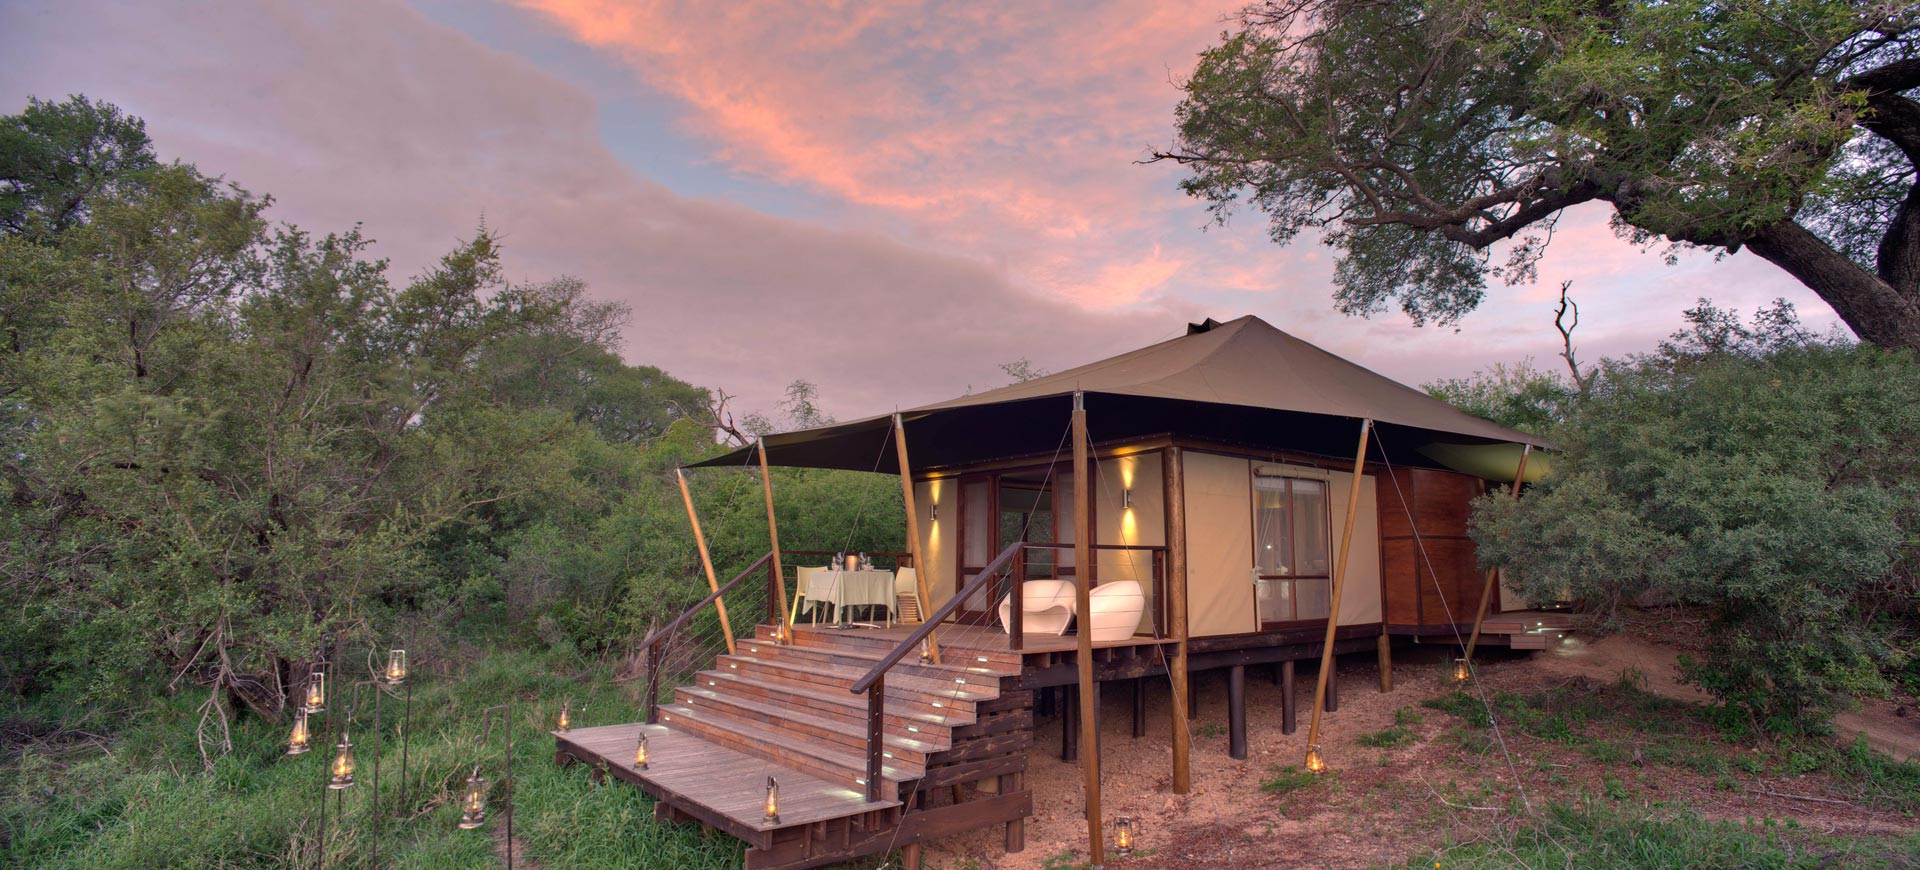 Ngala Tented Camp Kruger National Park